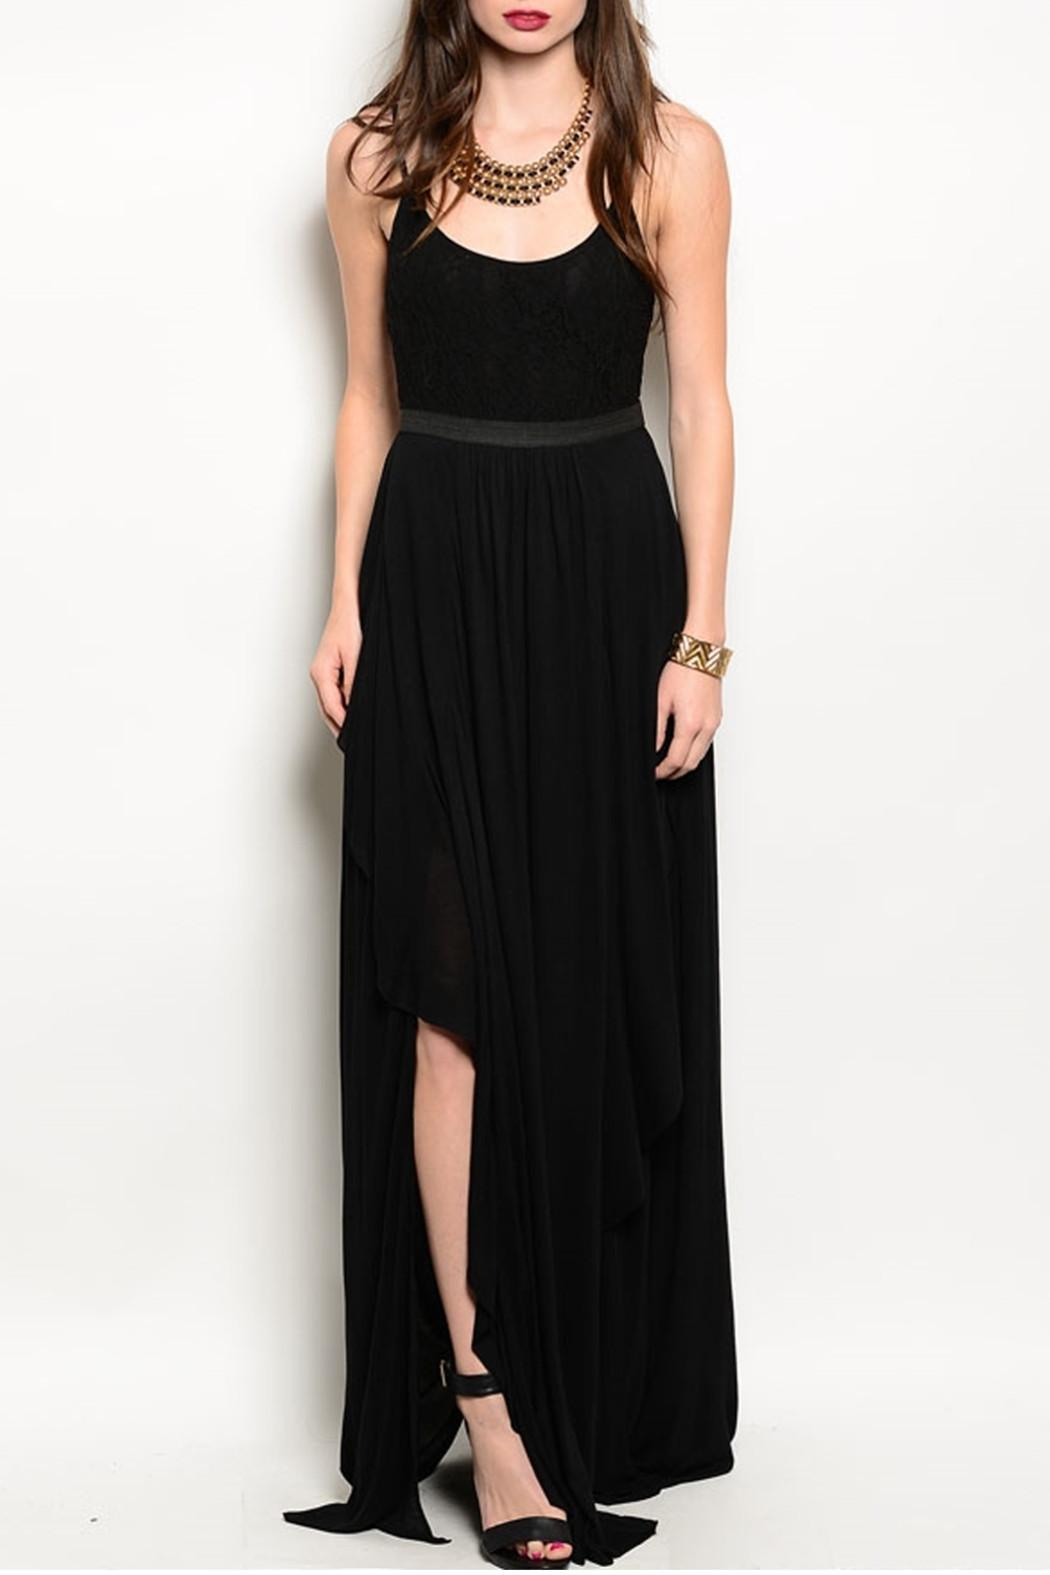 Ark & Co. Black Maxi Dress - Main Image